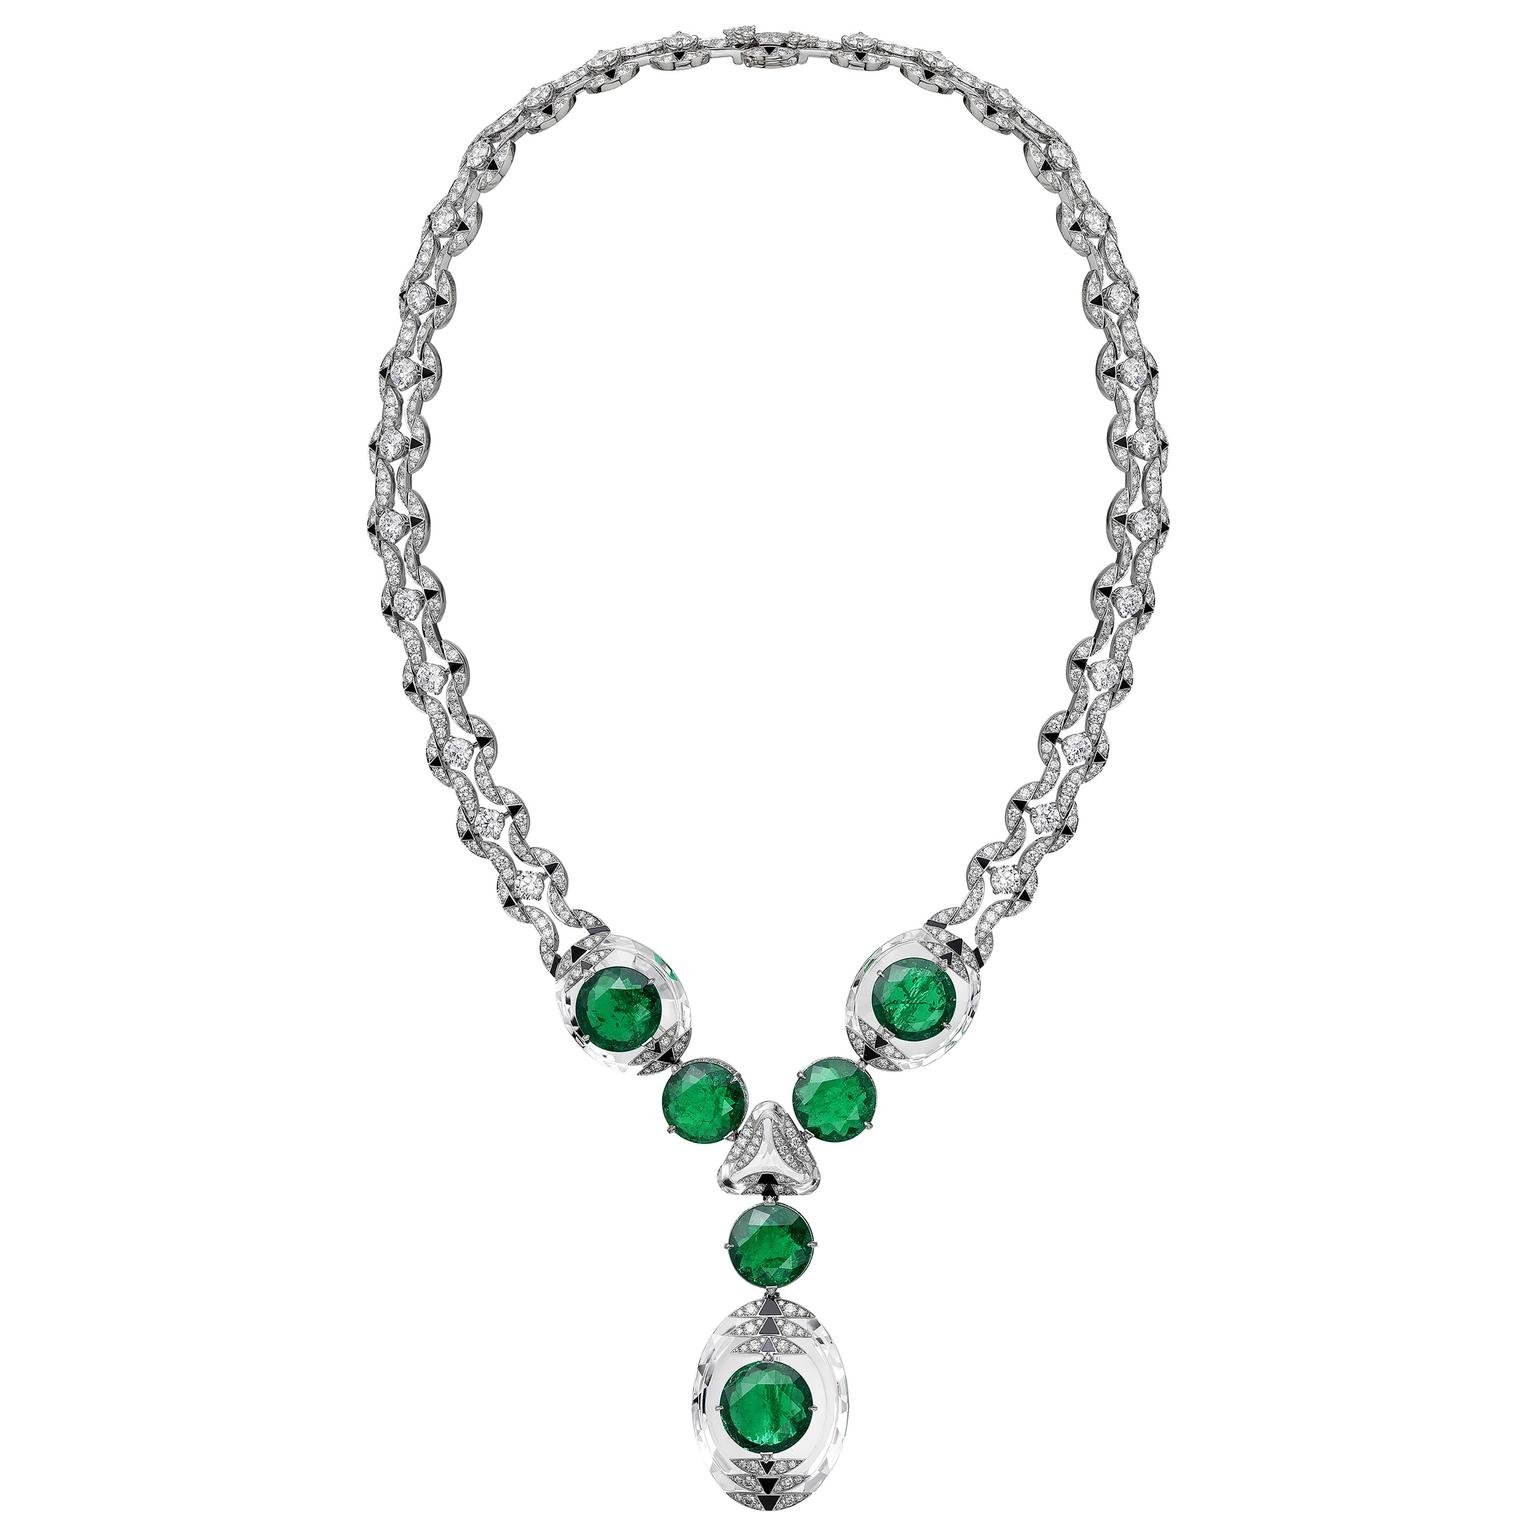 Emerald and rock crystal necklace from Cartier